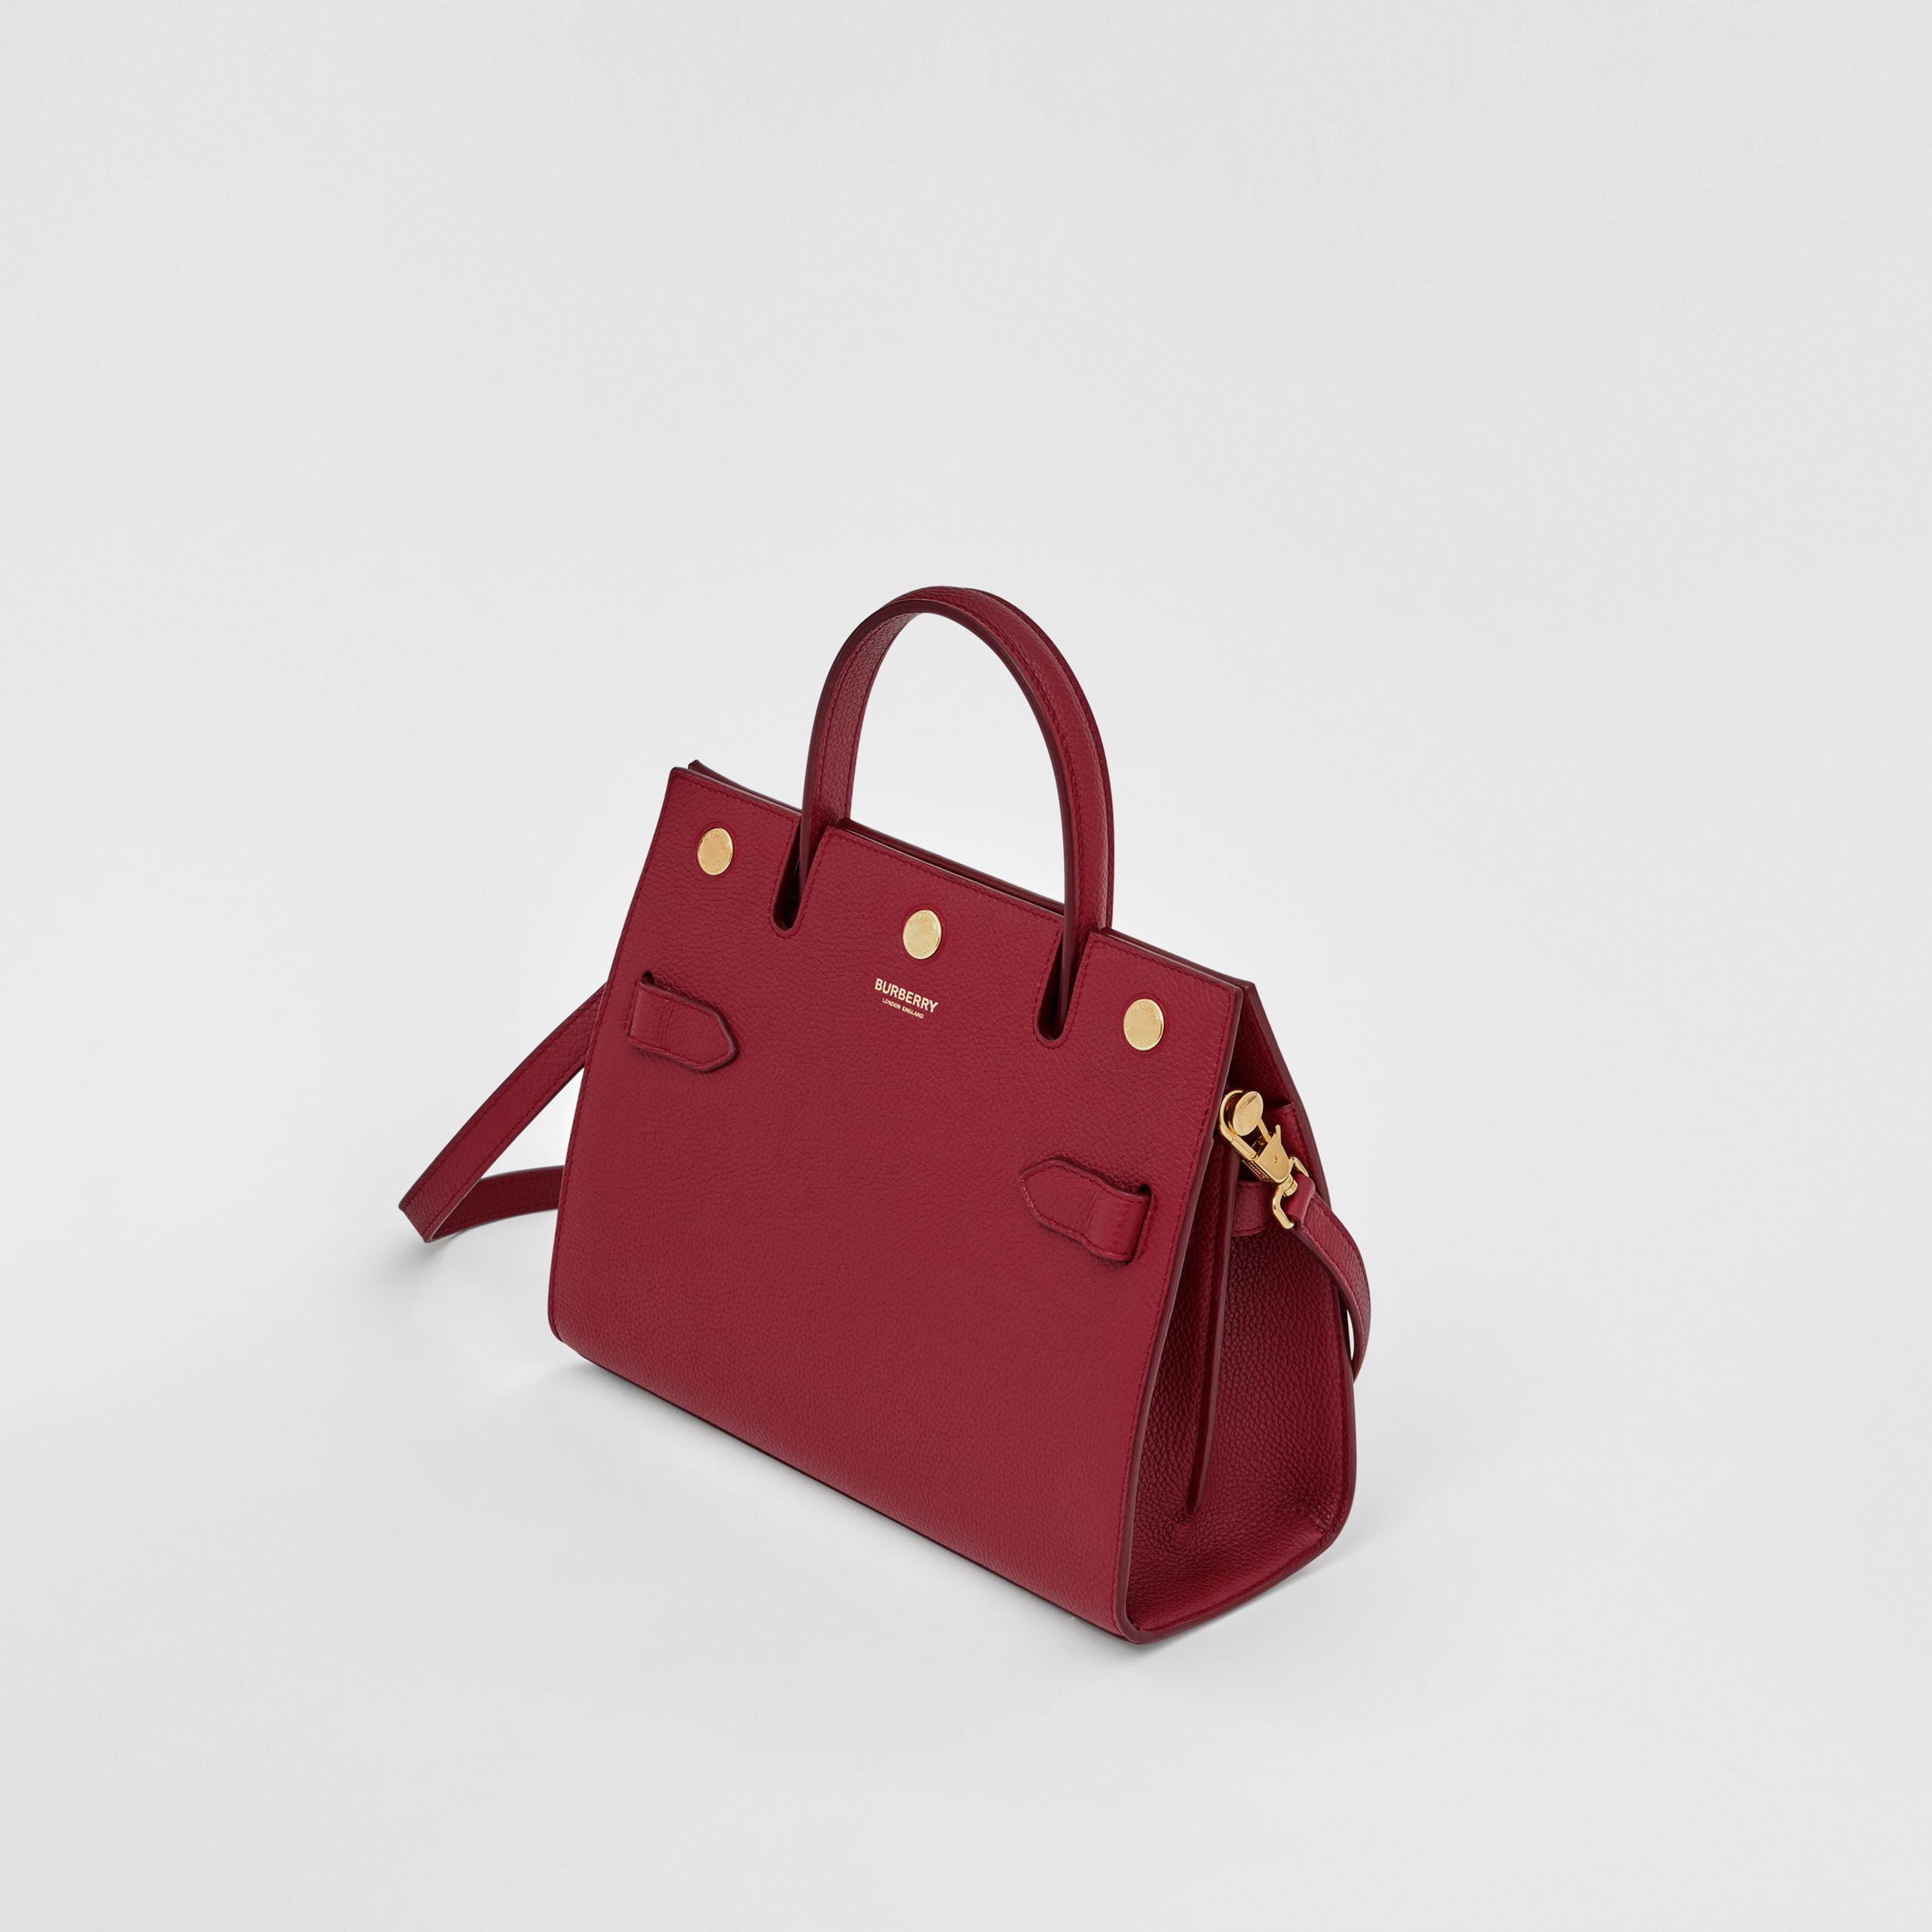 Mini Leather Title Bag in Dark Crimson - Women | Burberry Australia - 4